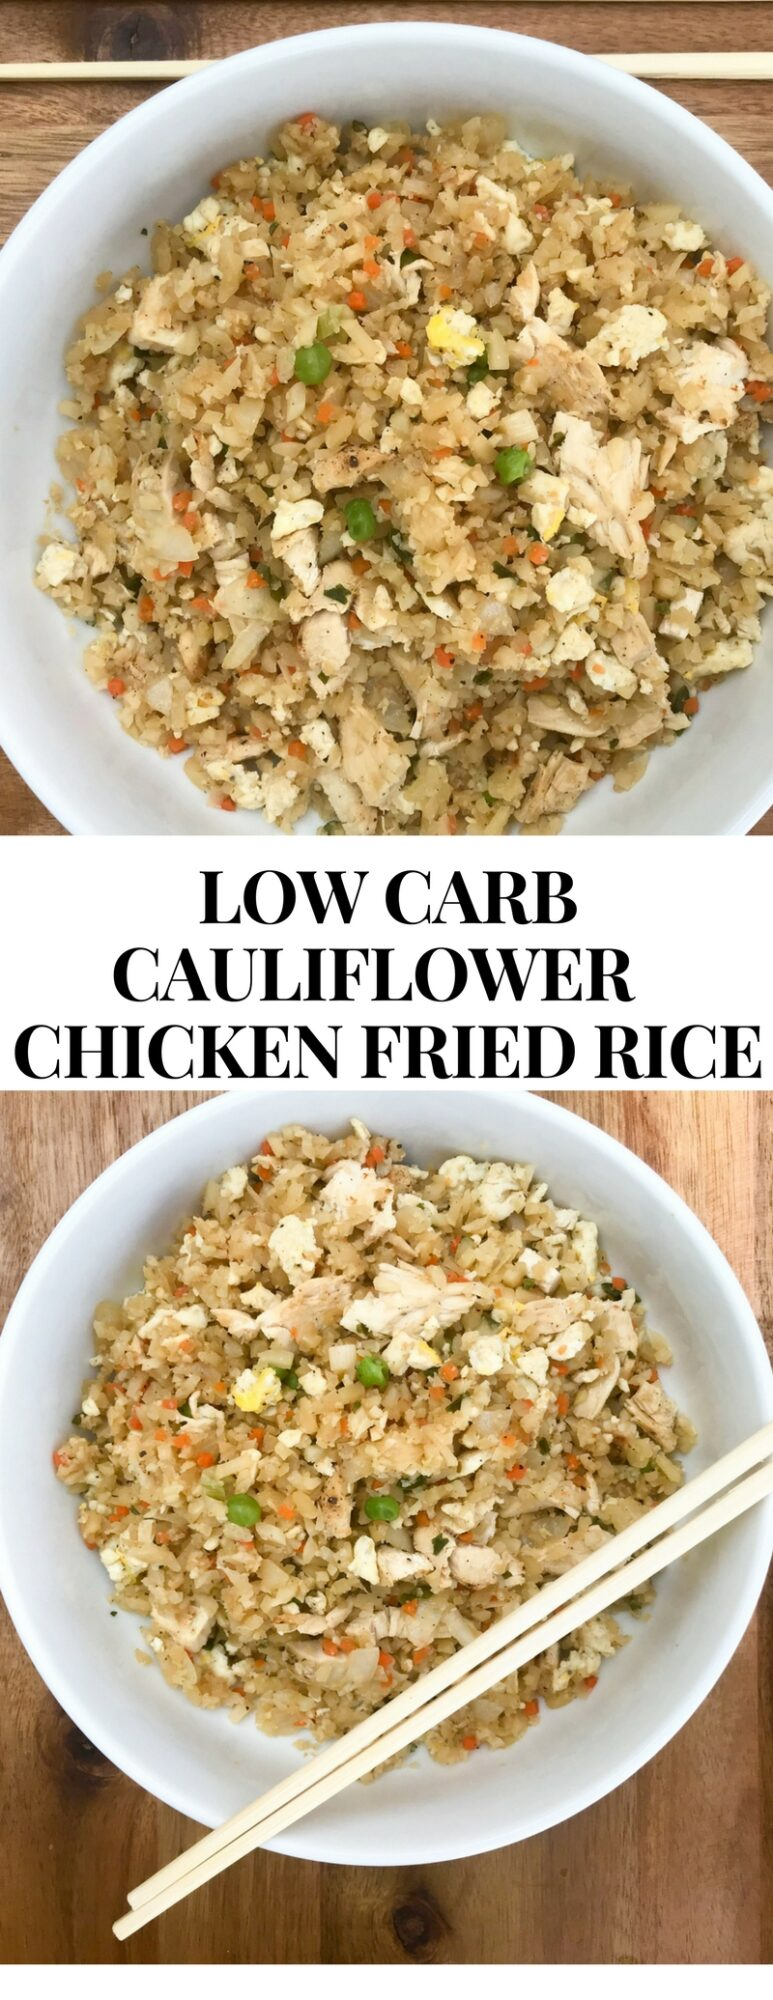 Low Carb Cauliflower Chicken Fried Rice.